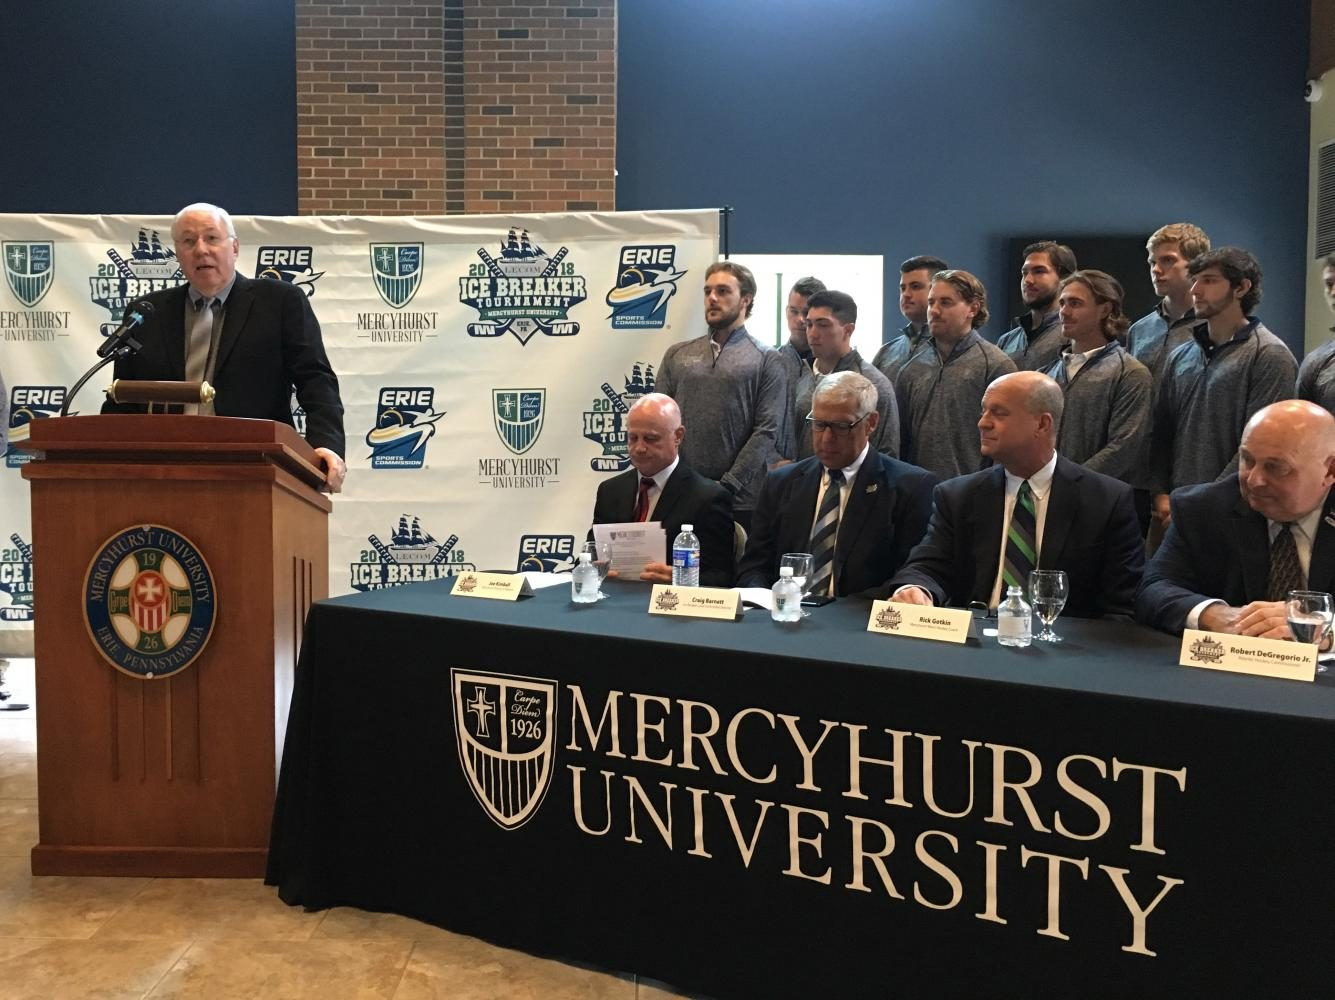 Cool+news+for+city%3A+Mercyhurst+to+host+Ice+Breaker+Tournament